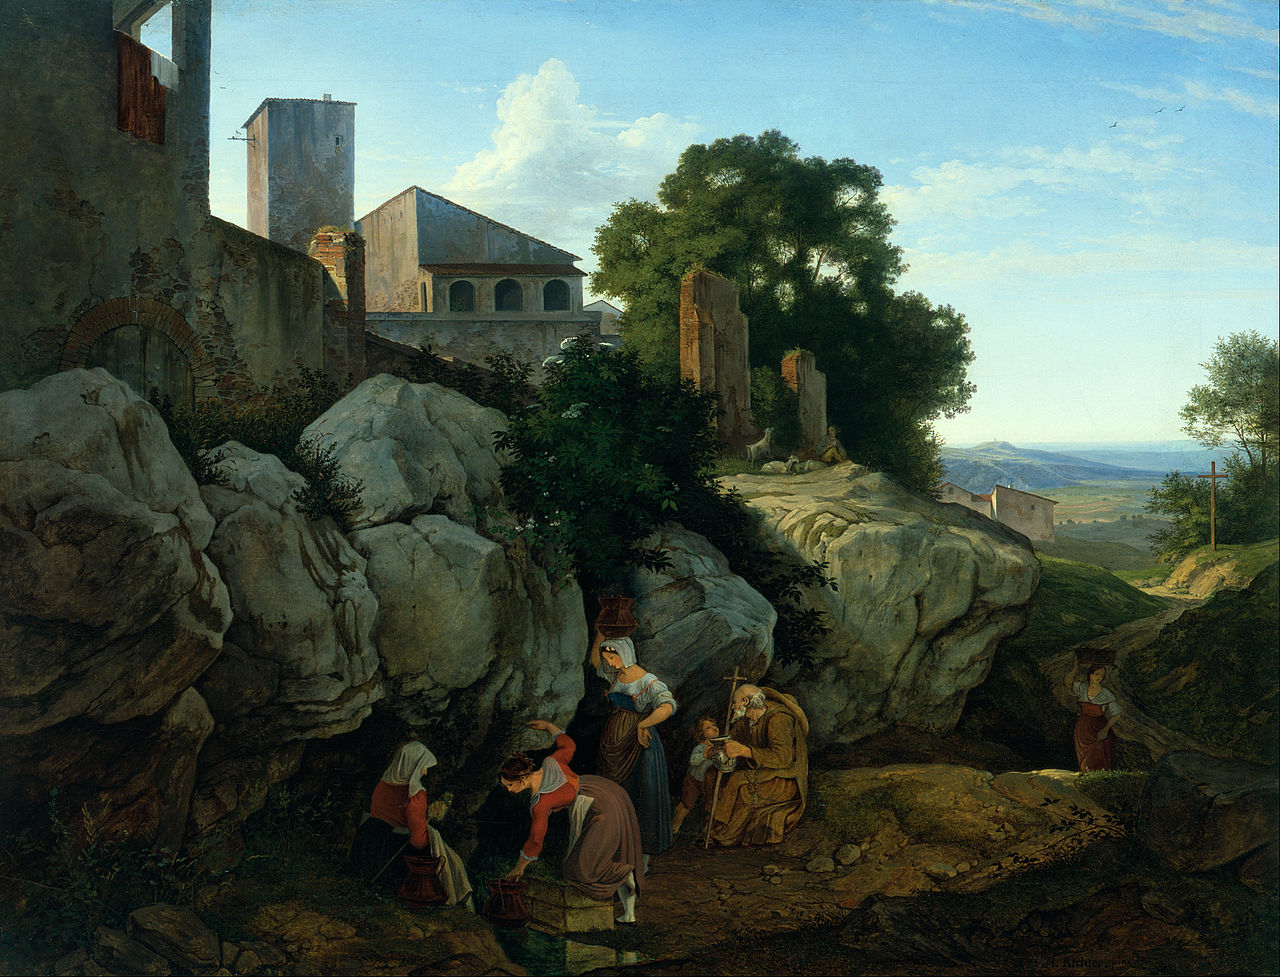 1280px-Ludwig_Richter_-_Ariccia_(Morning)_-_Google_Art_Project.jpg